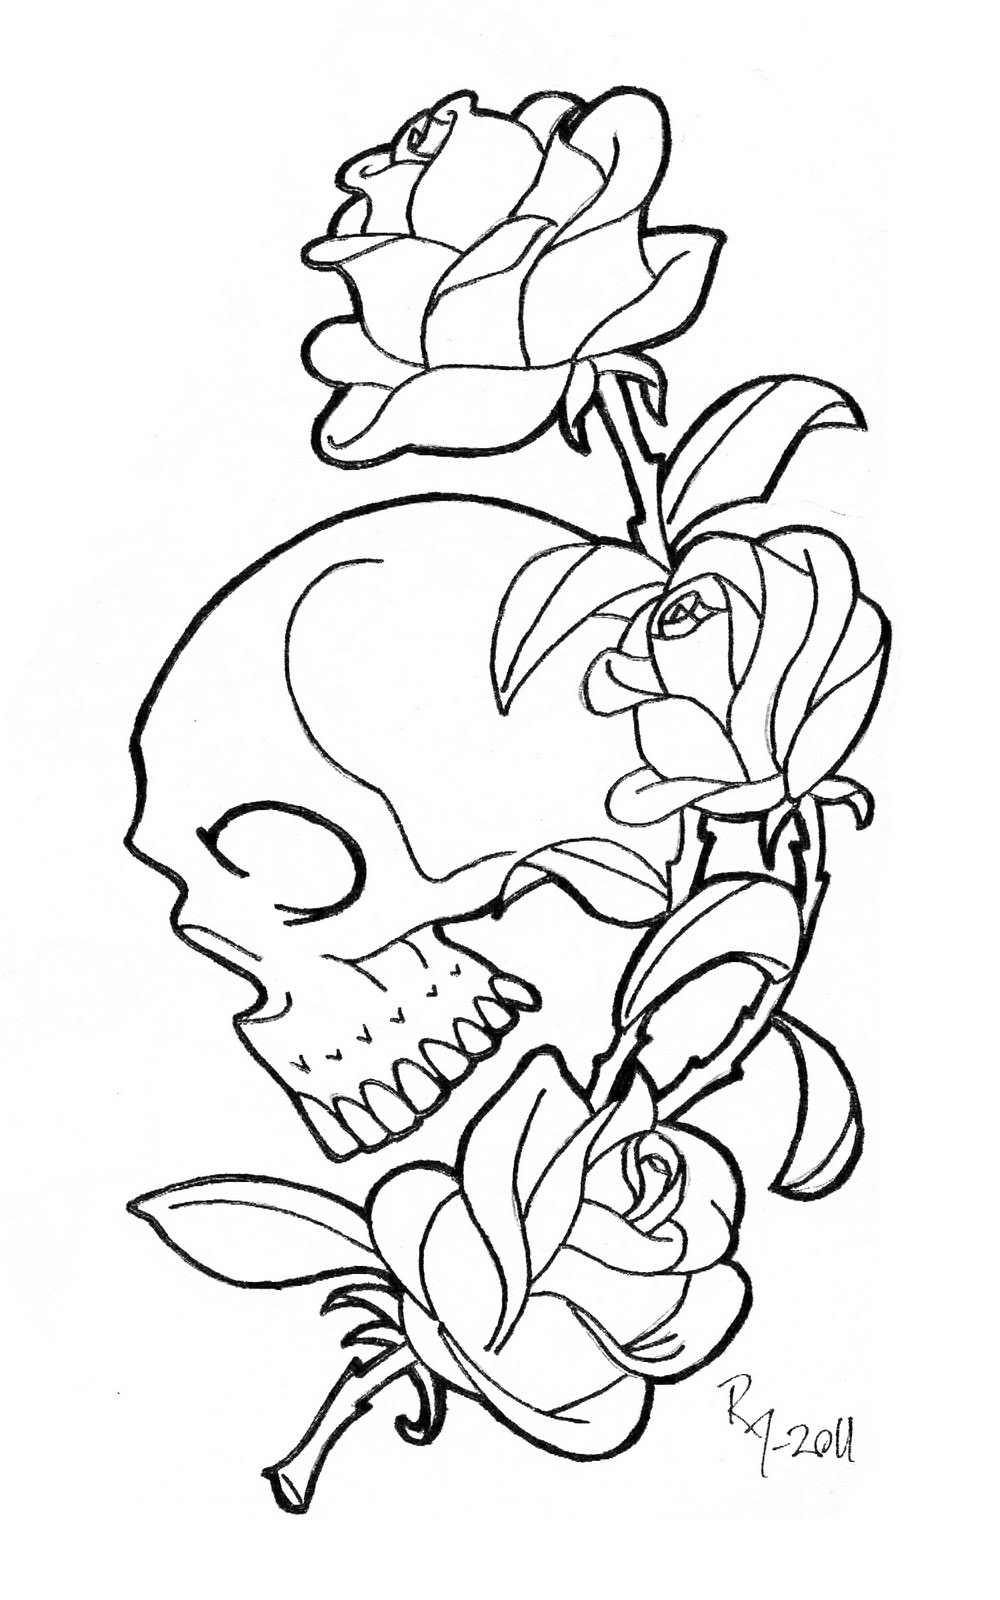 Skull With Roses Coloring Pages